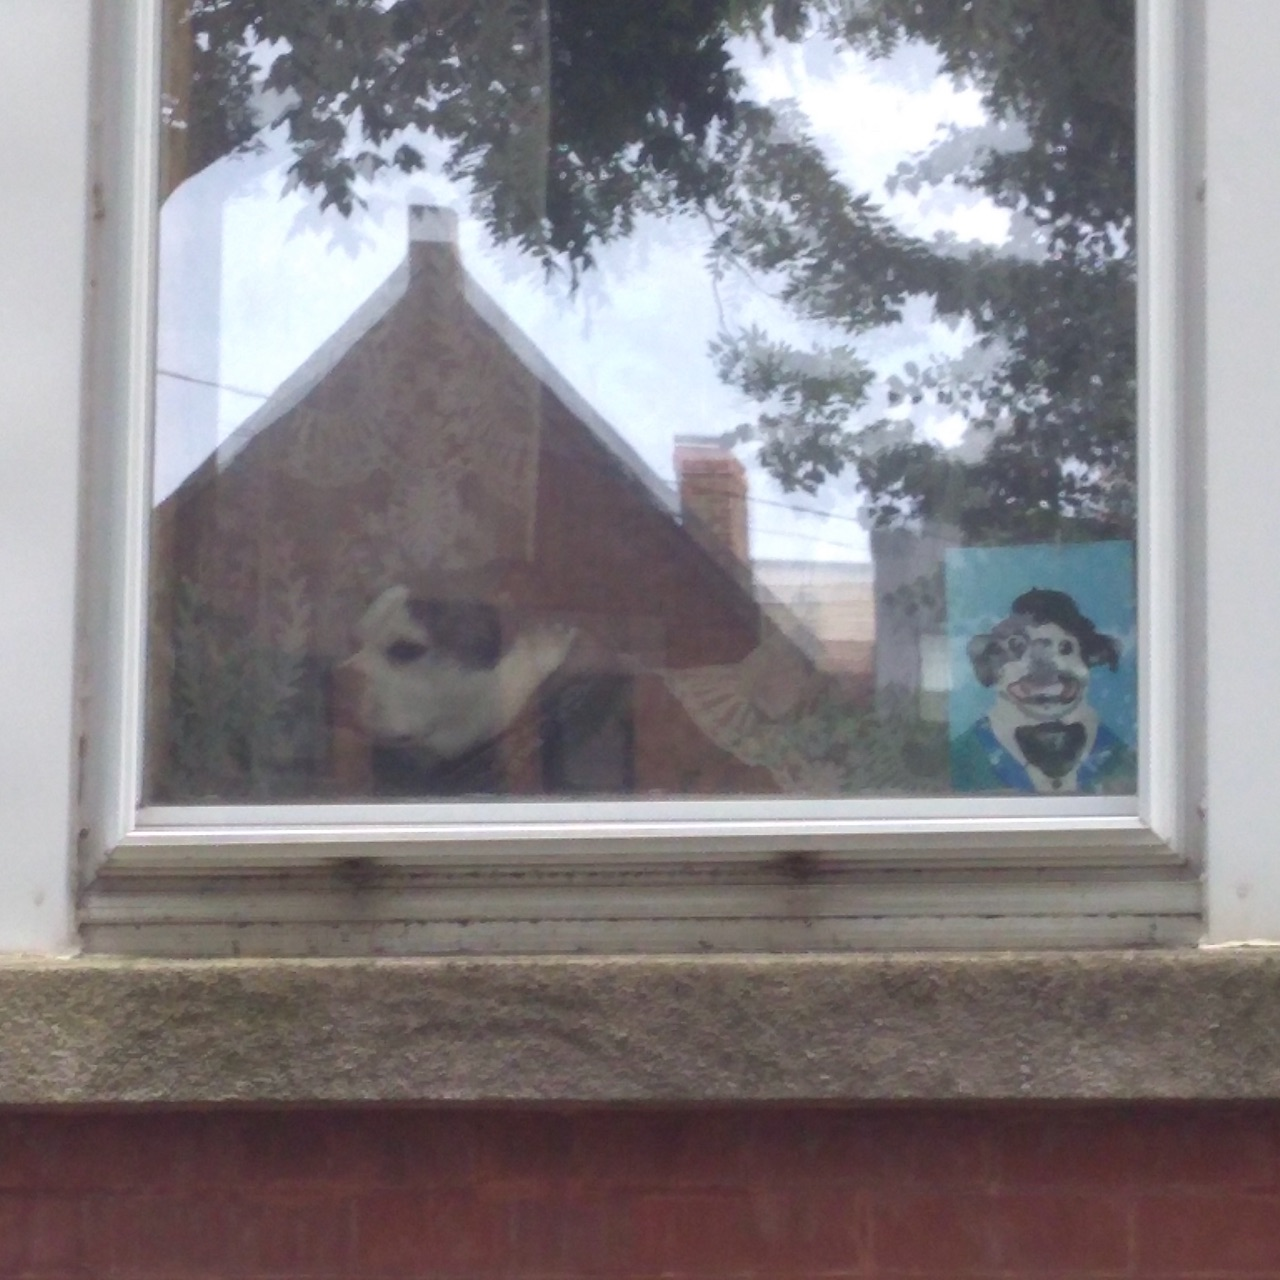 A dog in a window, sitting next to a small painting of himself